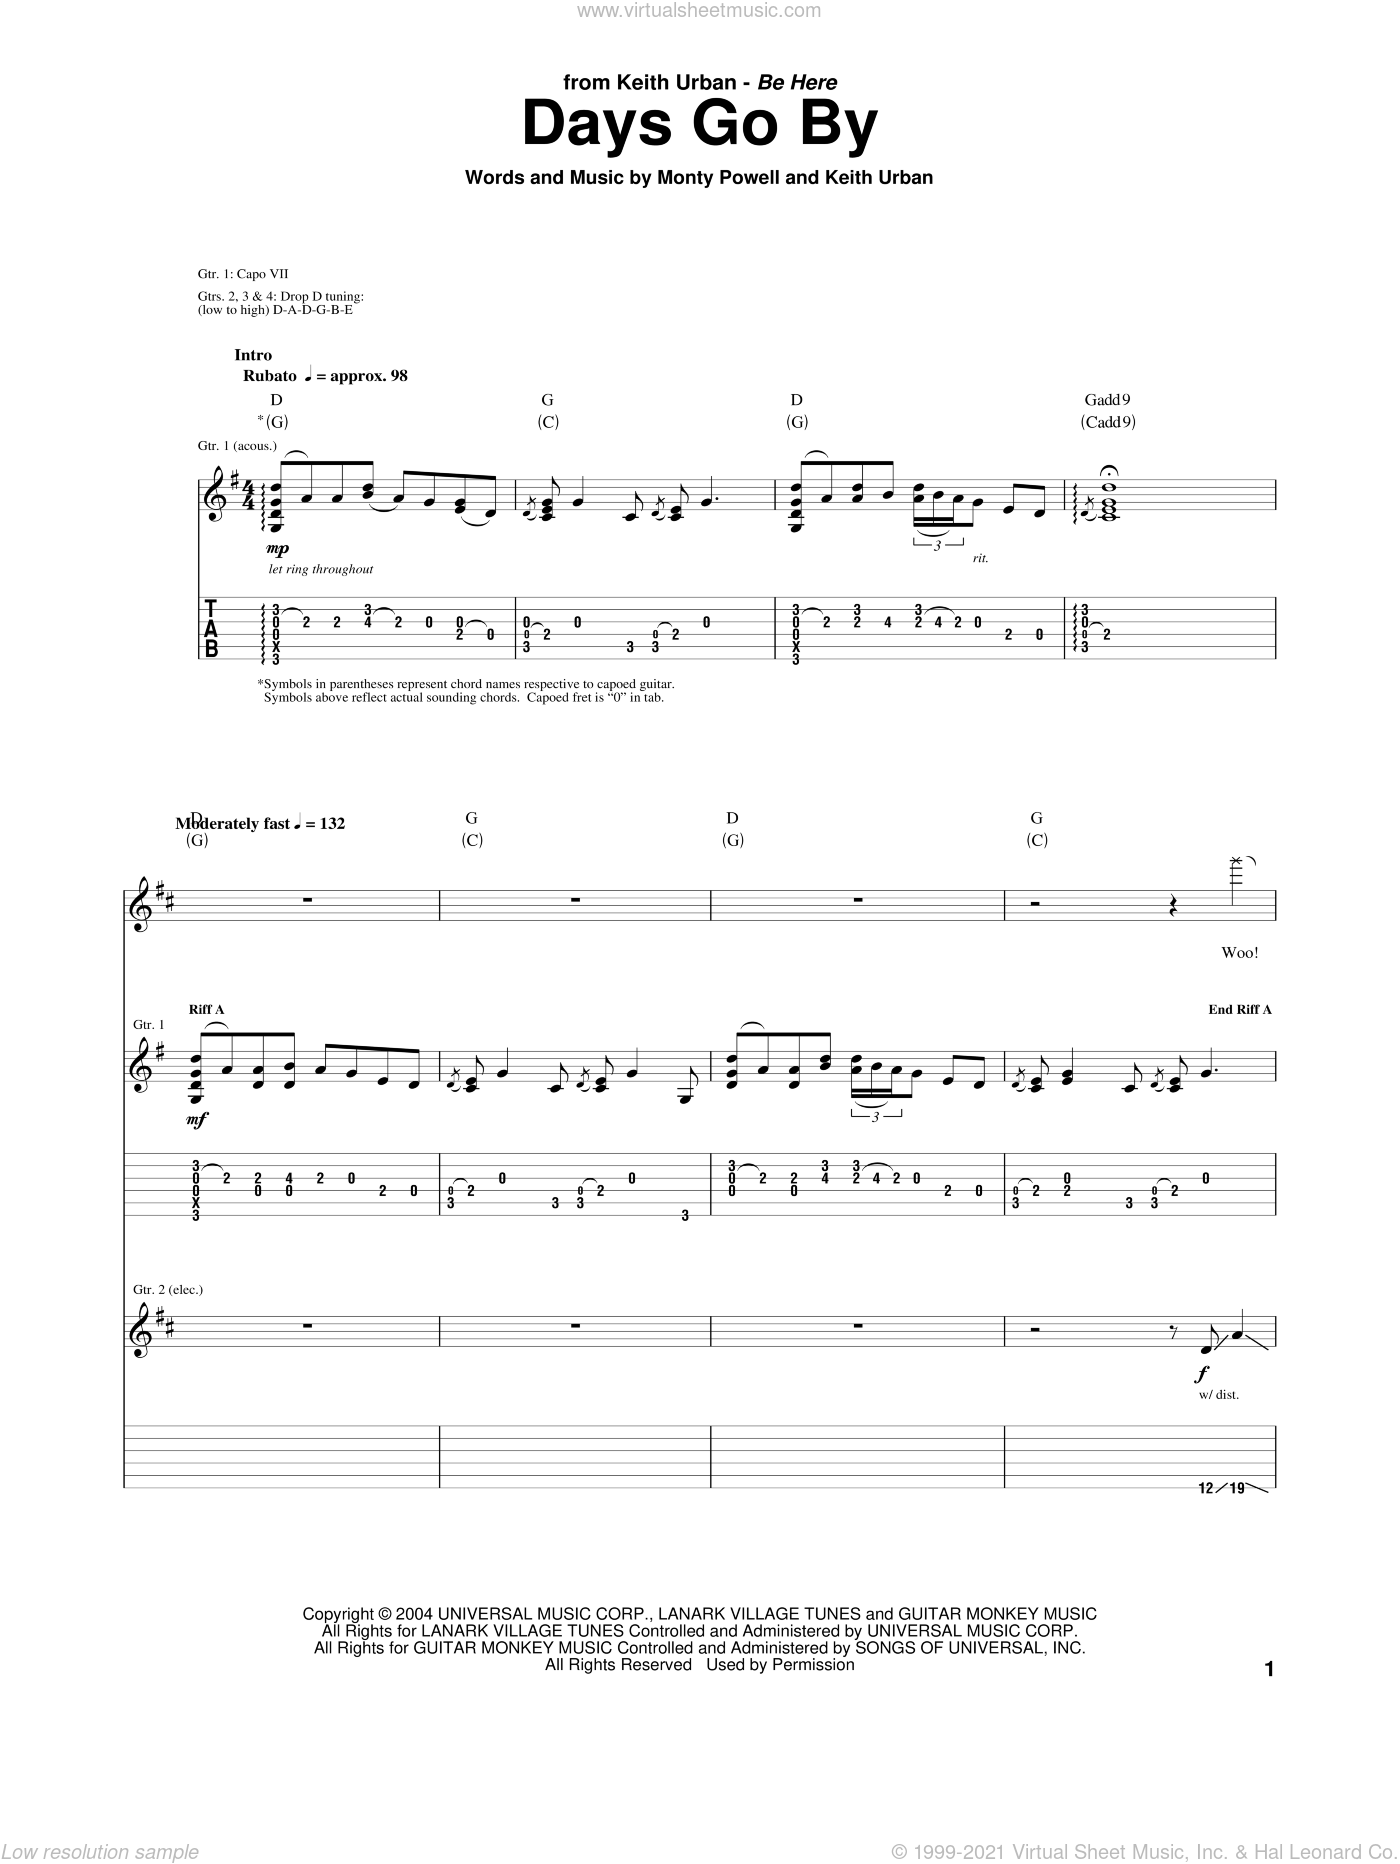 Days Go By sheet music for guitar (tablature) by Keith Urban and Monty Powell, intermediate skill level